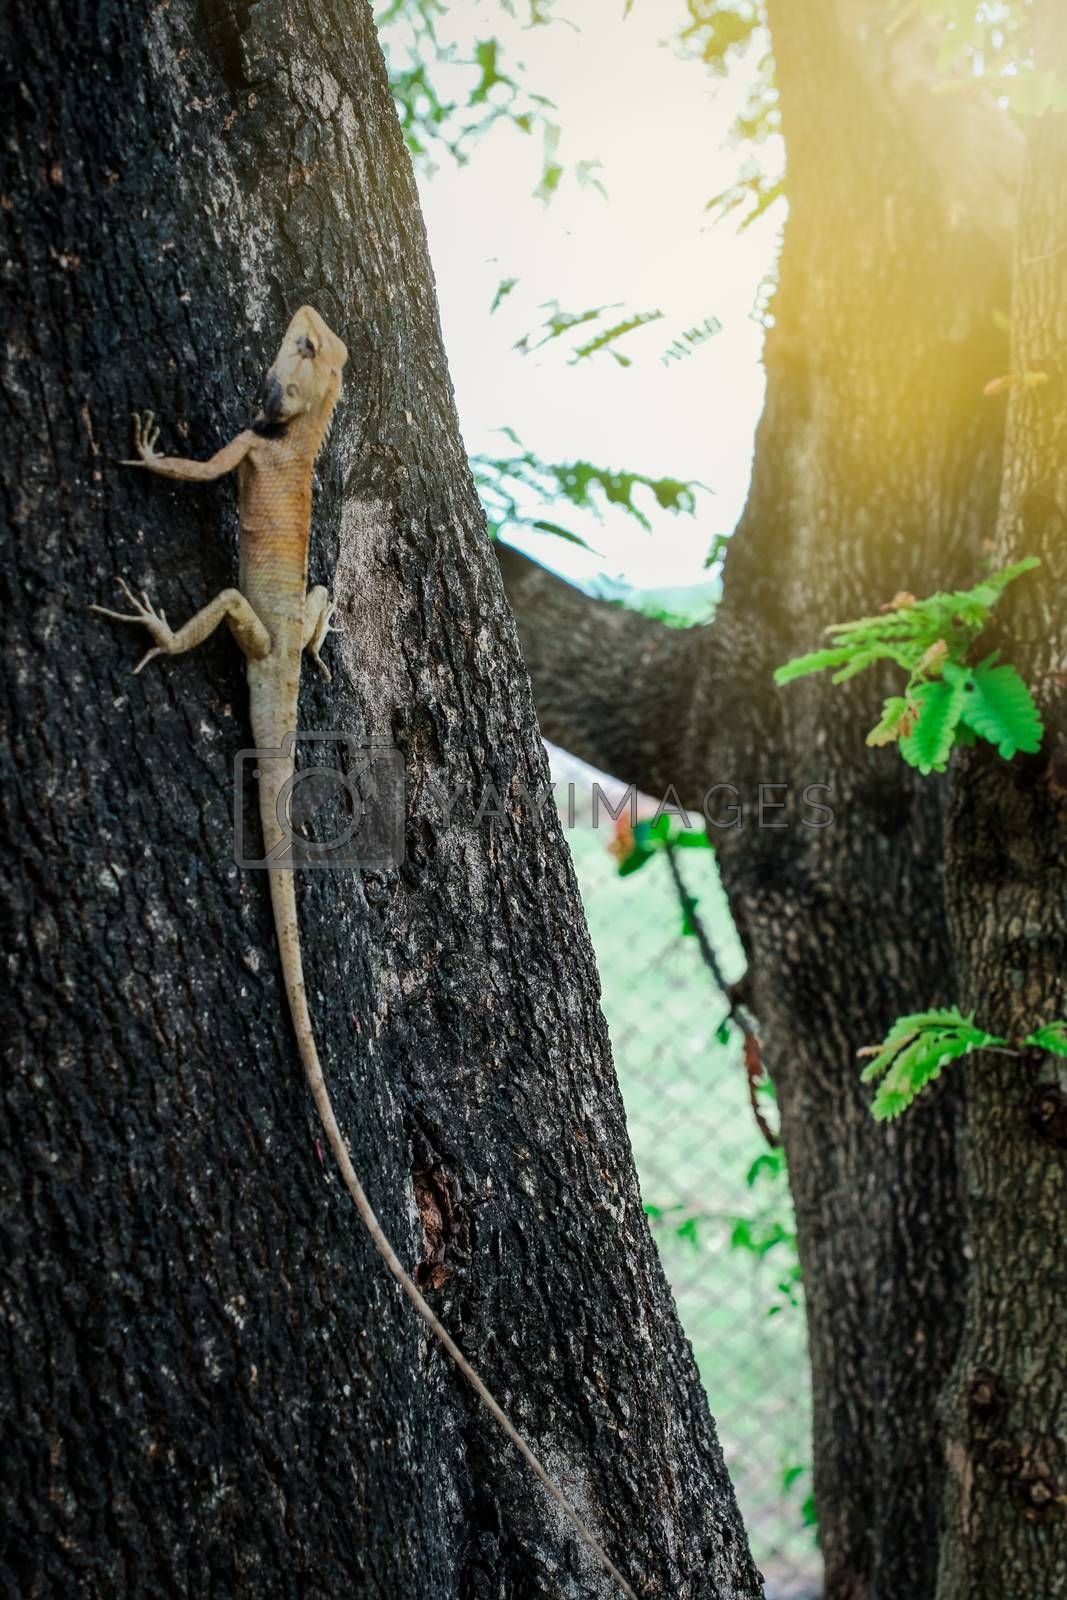 lizard with tamarind trees background.